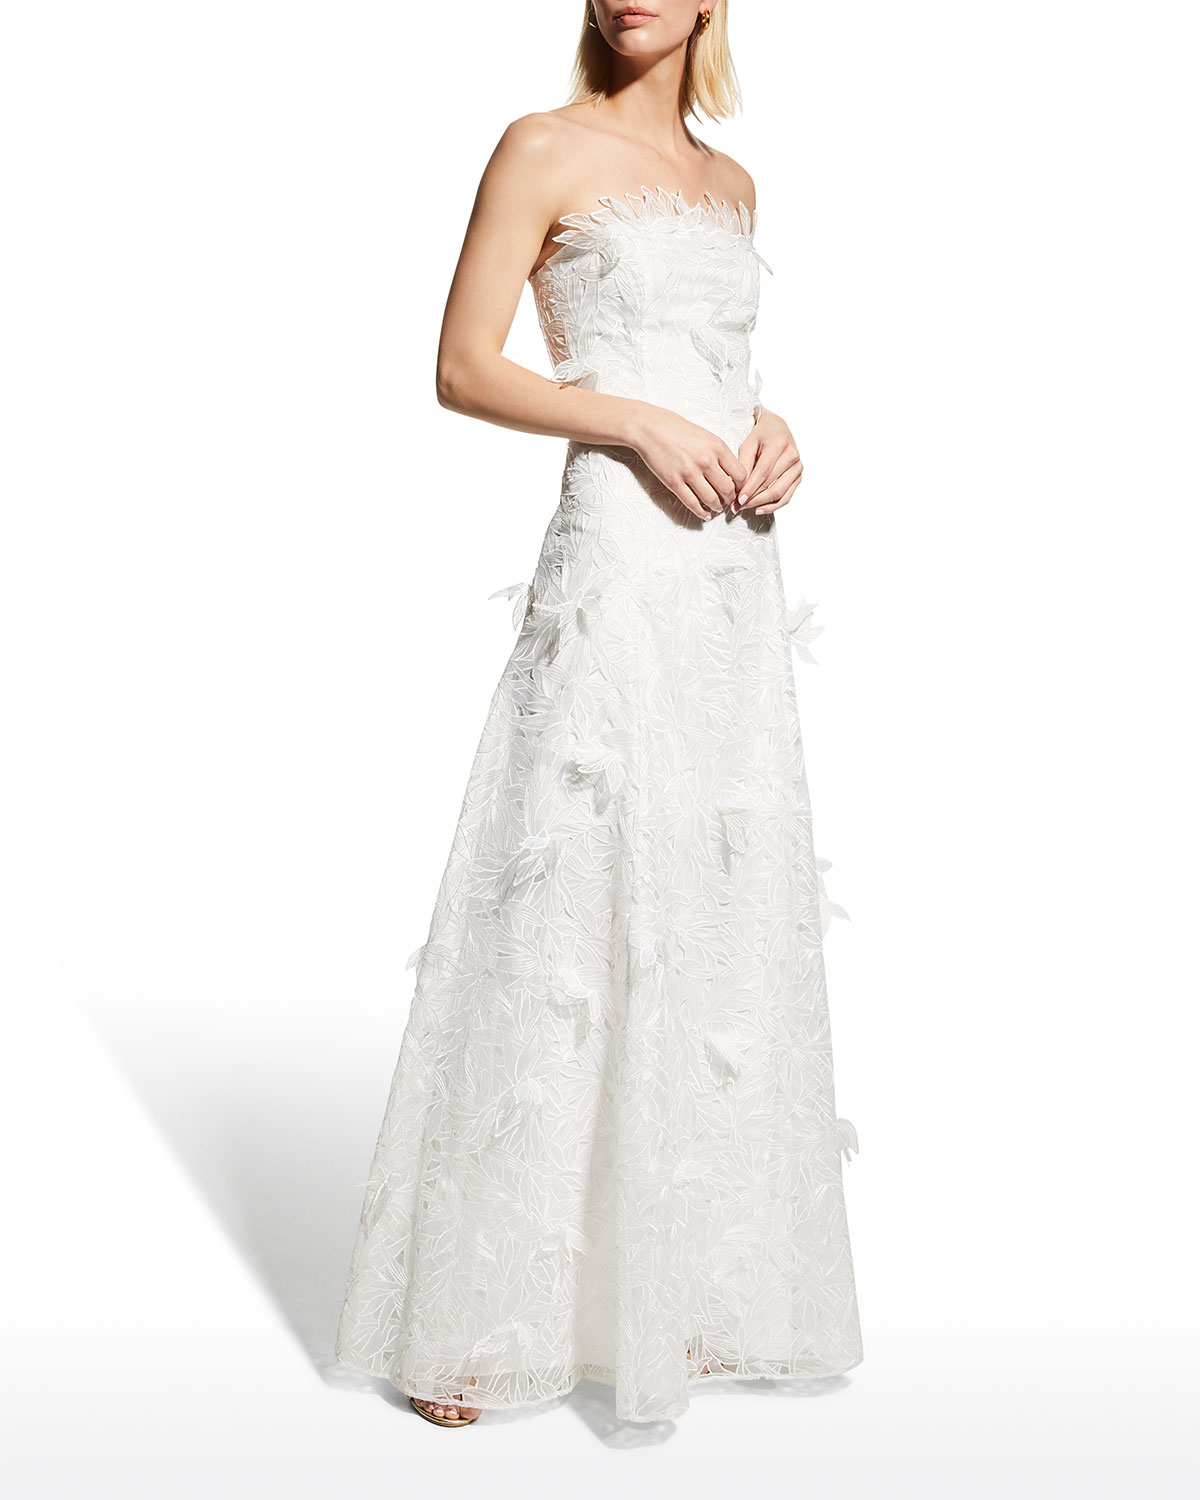 3D Applique Strapless Embroidered Organza Gown